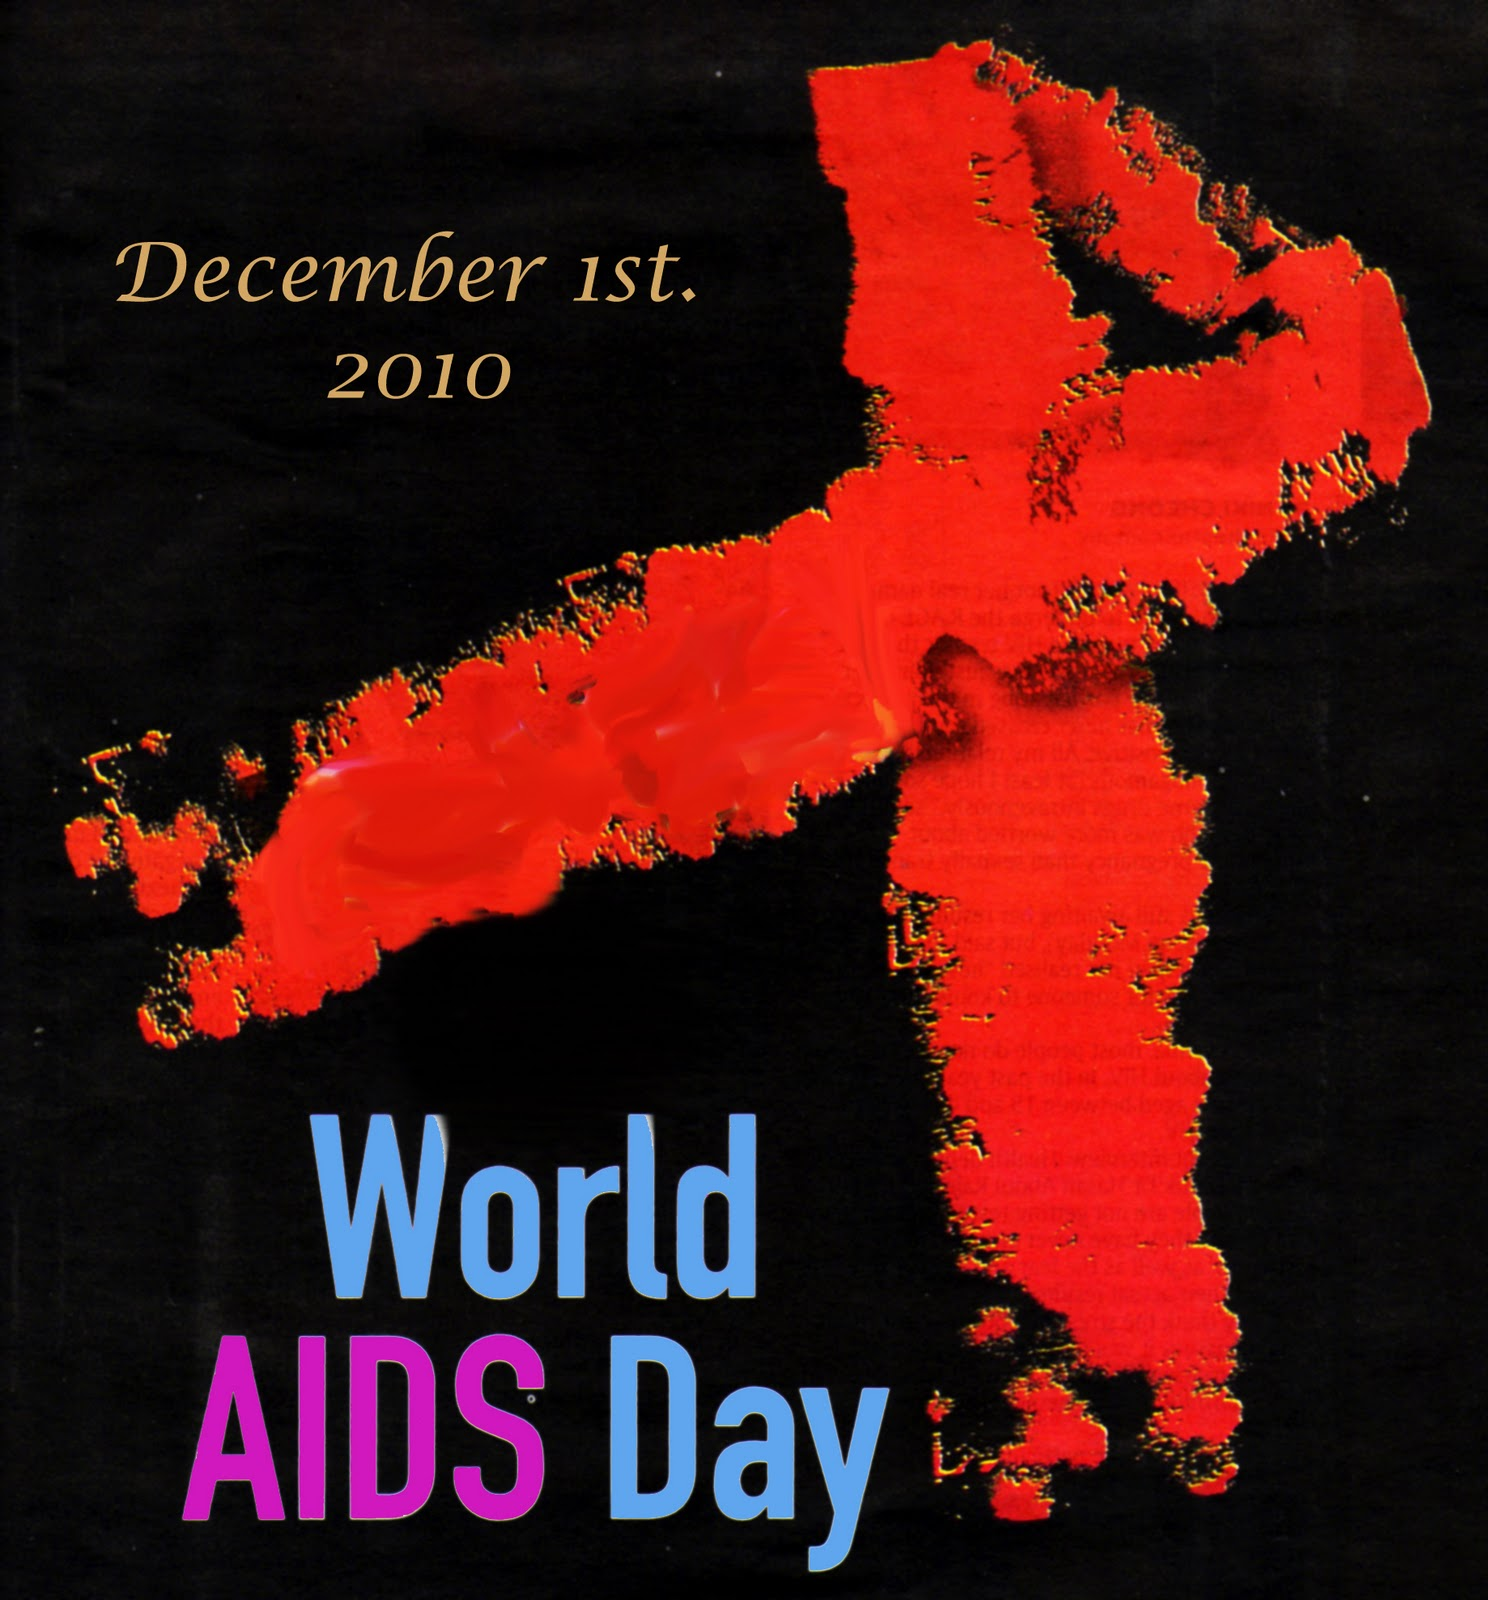 the seriousness of aids I was wondering if someone had aids,since its an immune deficeincy, would they tend to get sick easily, and how long can aids go un noticed without testing before symptoms arise.